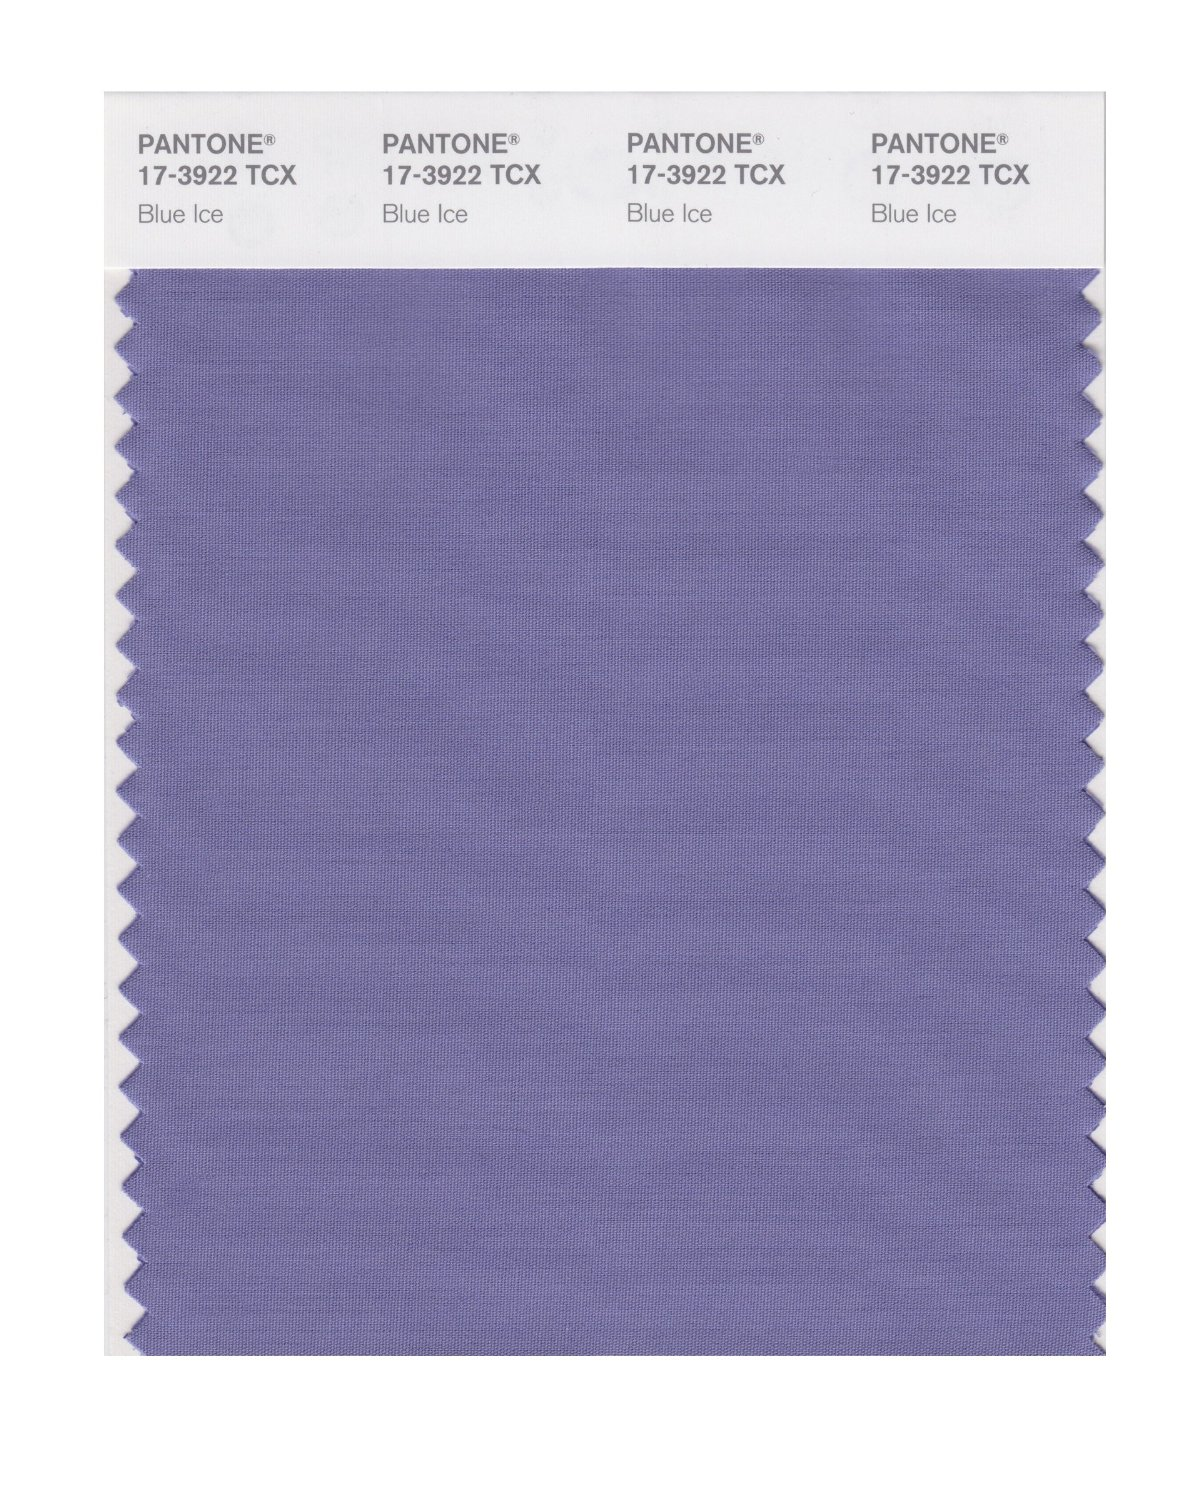 Pantone Smart Swatch 17-3922 Blue Ice